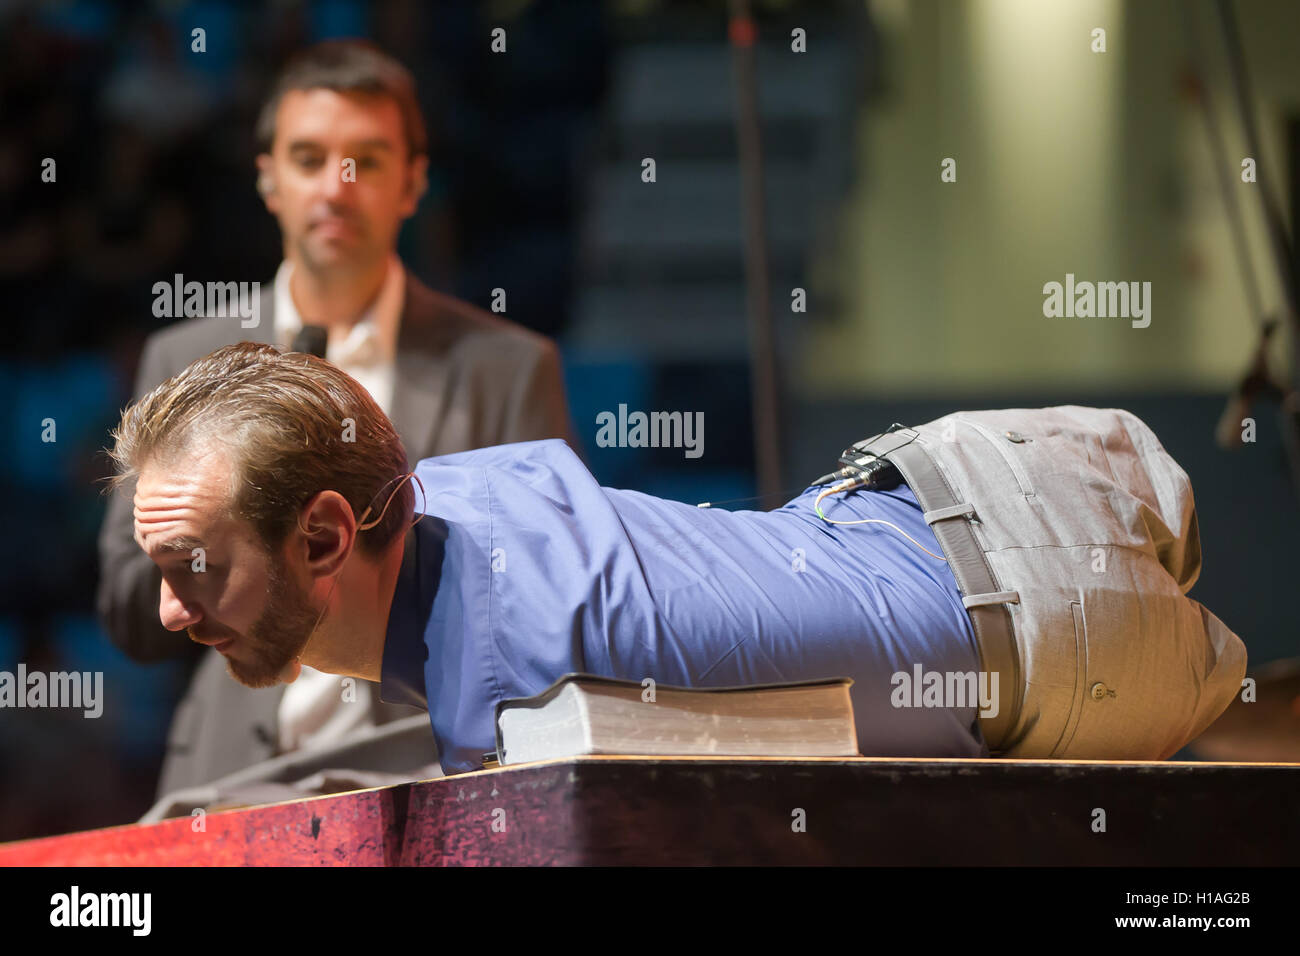 Budapest, Hungary. 22nd Sep, 2016. Australian motivational speaker Nick Vujicic gives a lecture in Budapest, Hungary, Sept. 22, 2016. He was born without legs and arms. Credit:  Attila Volgyi/Xinhua/Alamy Live News Stock Photo